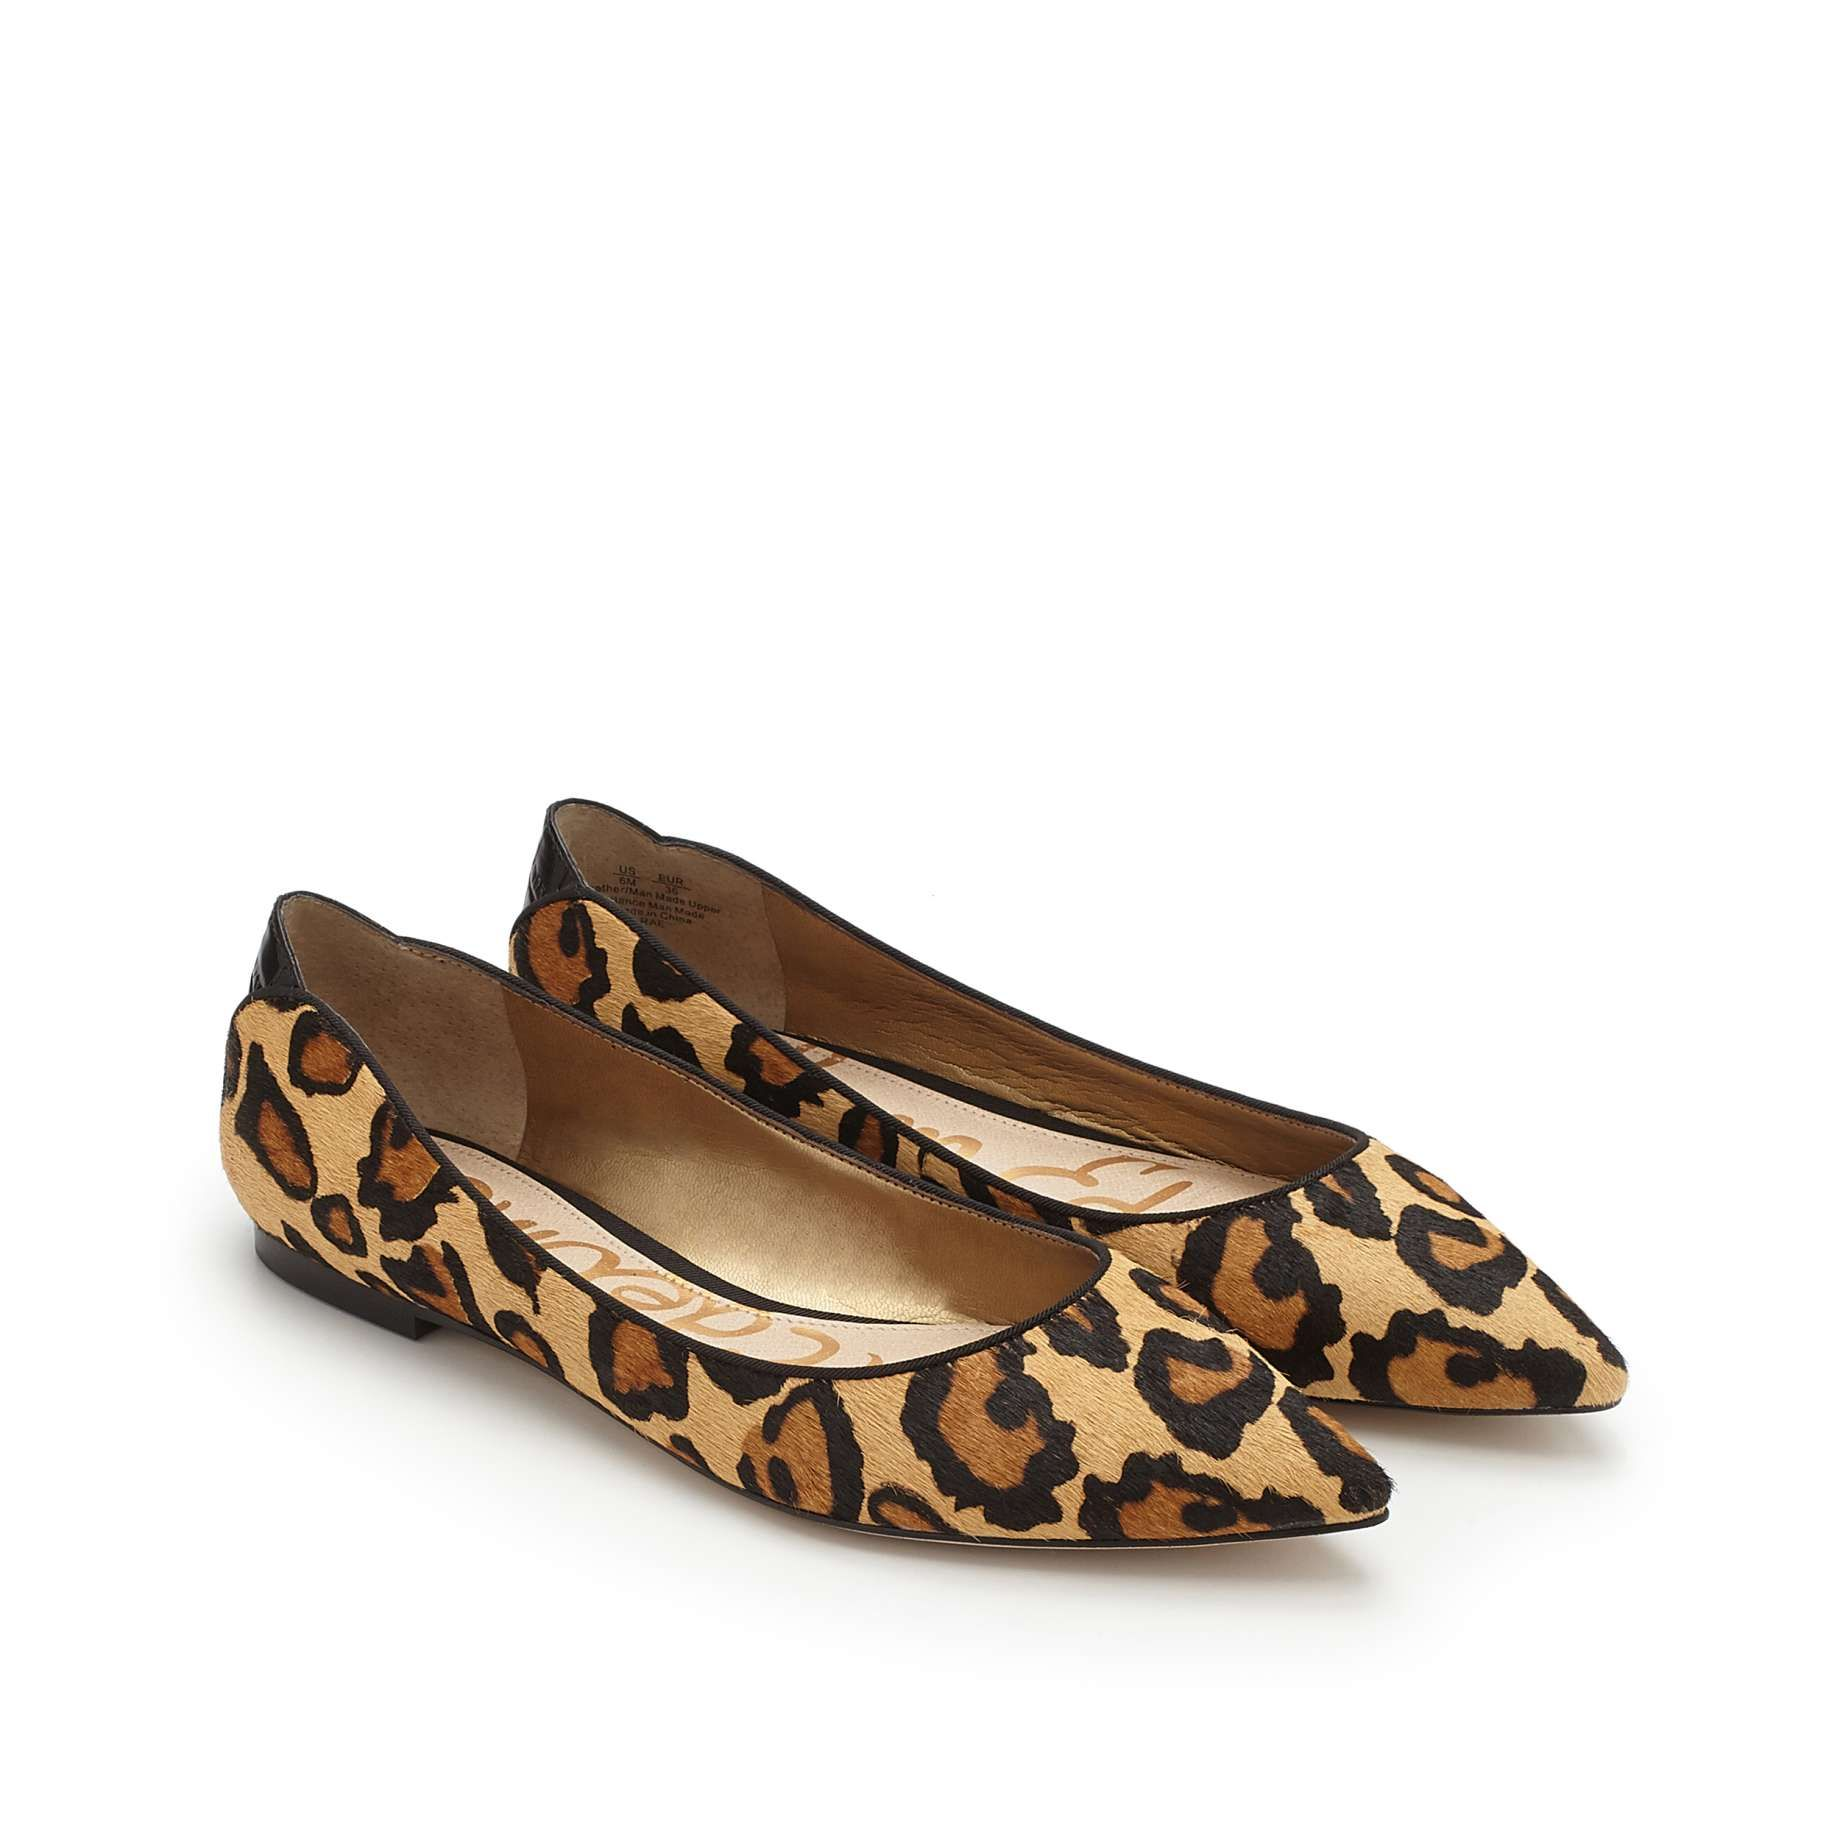 f9ff4f5b1 Finally found the perfect leopard flats! The quality is super and fit is  perfect. Sam Edelman - Rae New Nude Leopard